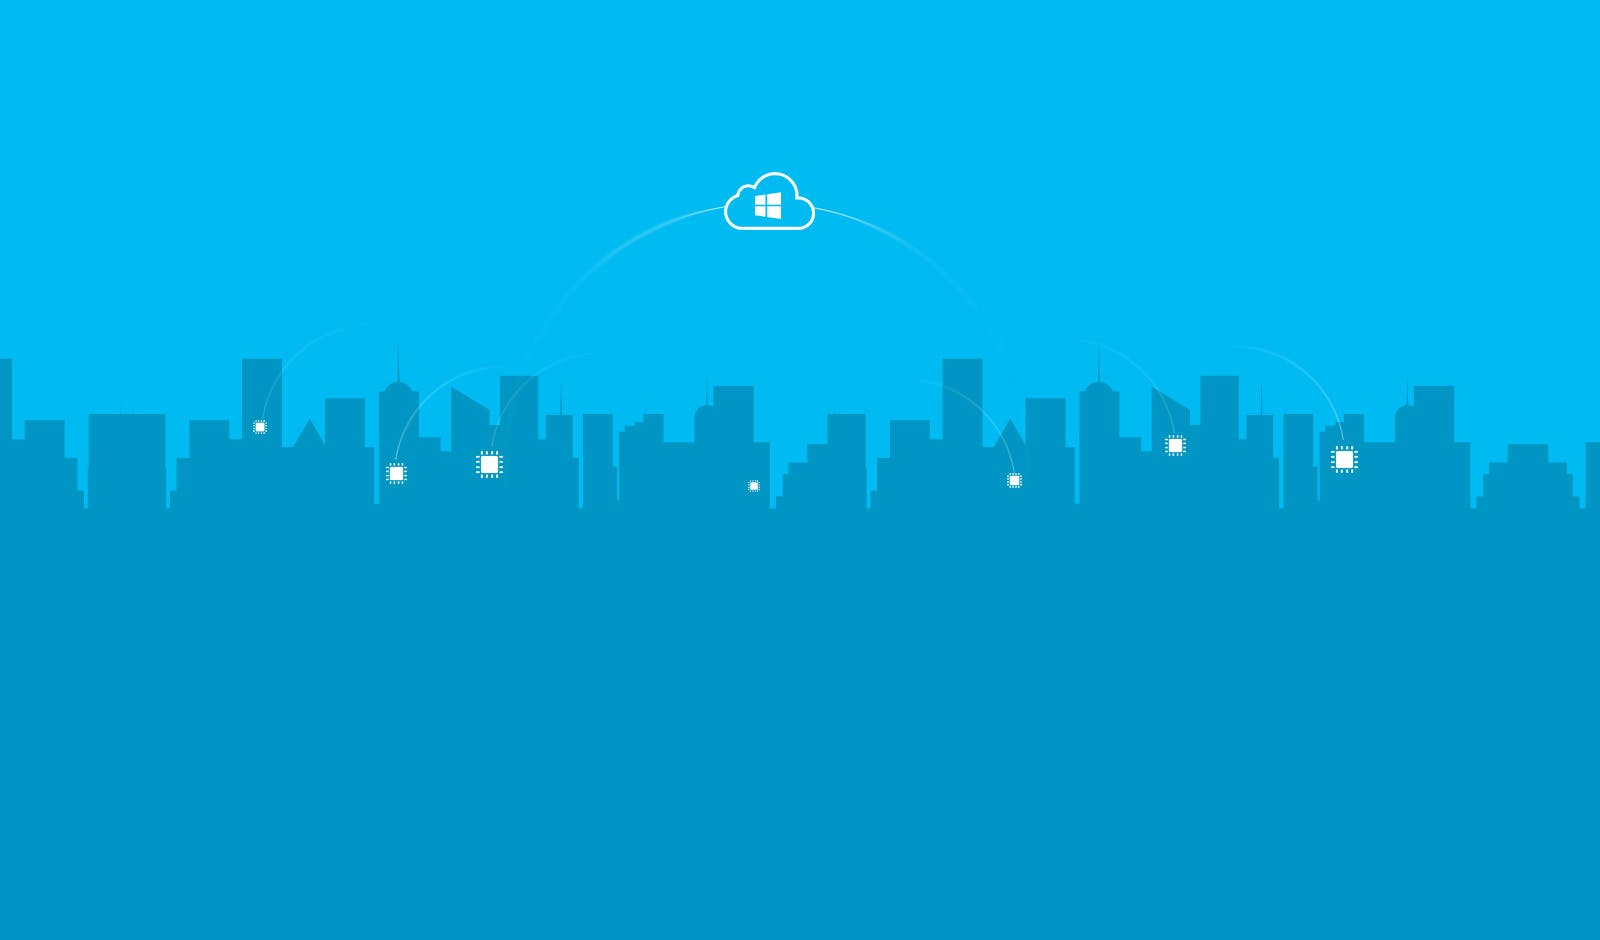 Microsoft Azure: Building The Enterprise IoT Cloud!